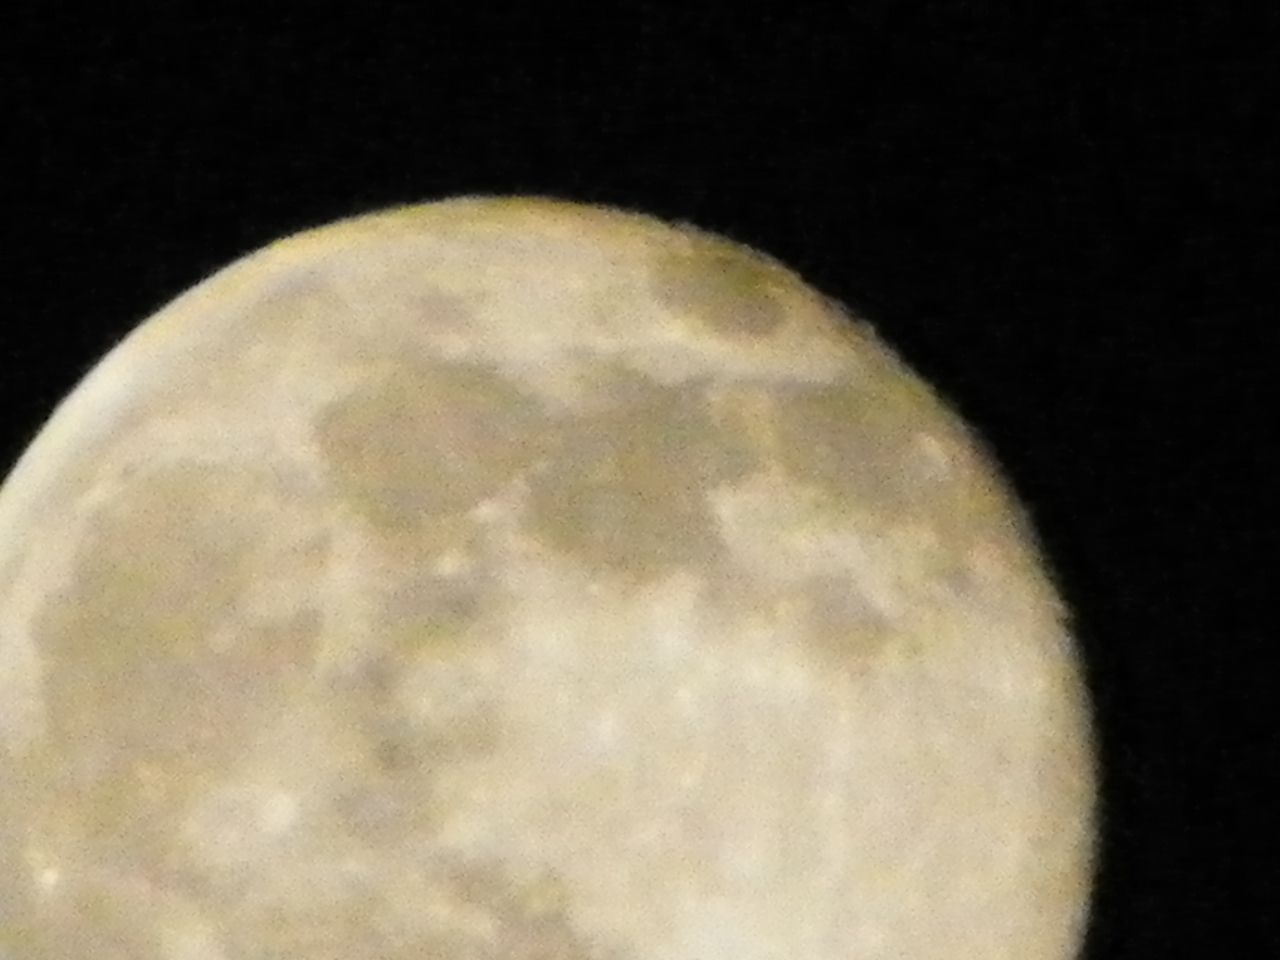 Full Moon 6-13-2014 @ 10:20 pm. Took this with my Kodak EasyShare Z981